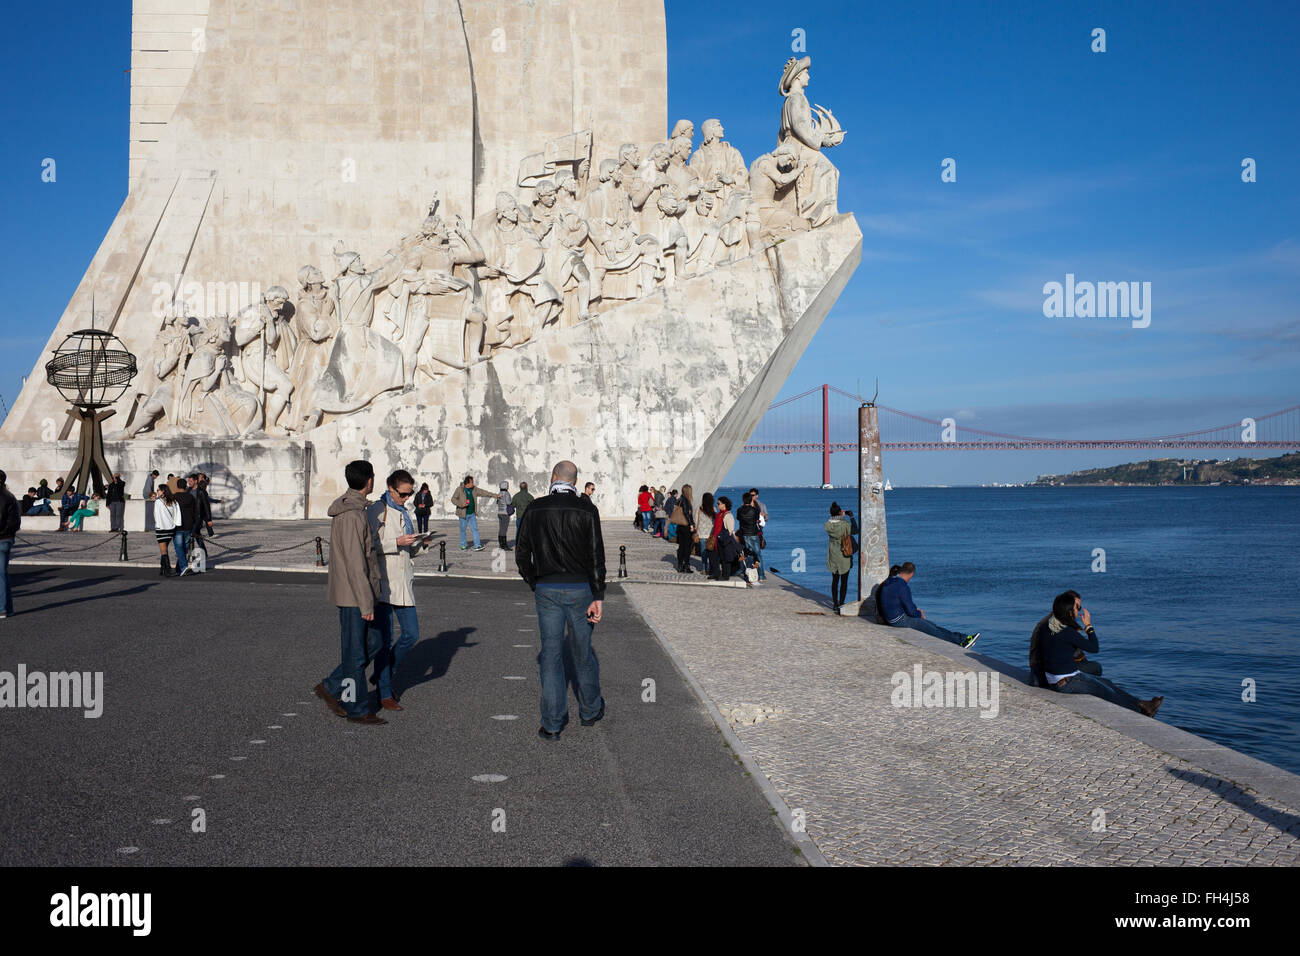 Portugal, Lisbon, Belem, Monument to the Discoveries (Padrao dos Descobrimentos), city landmark, Tagus River waterfront Stock Photo